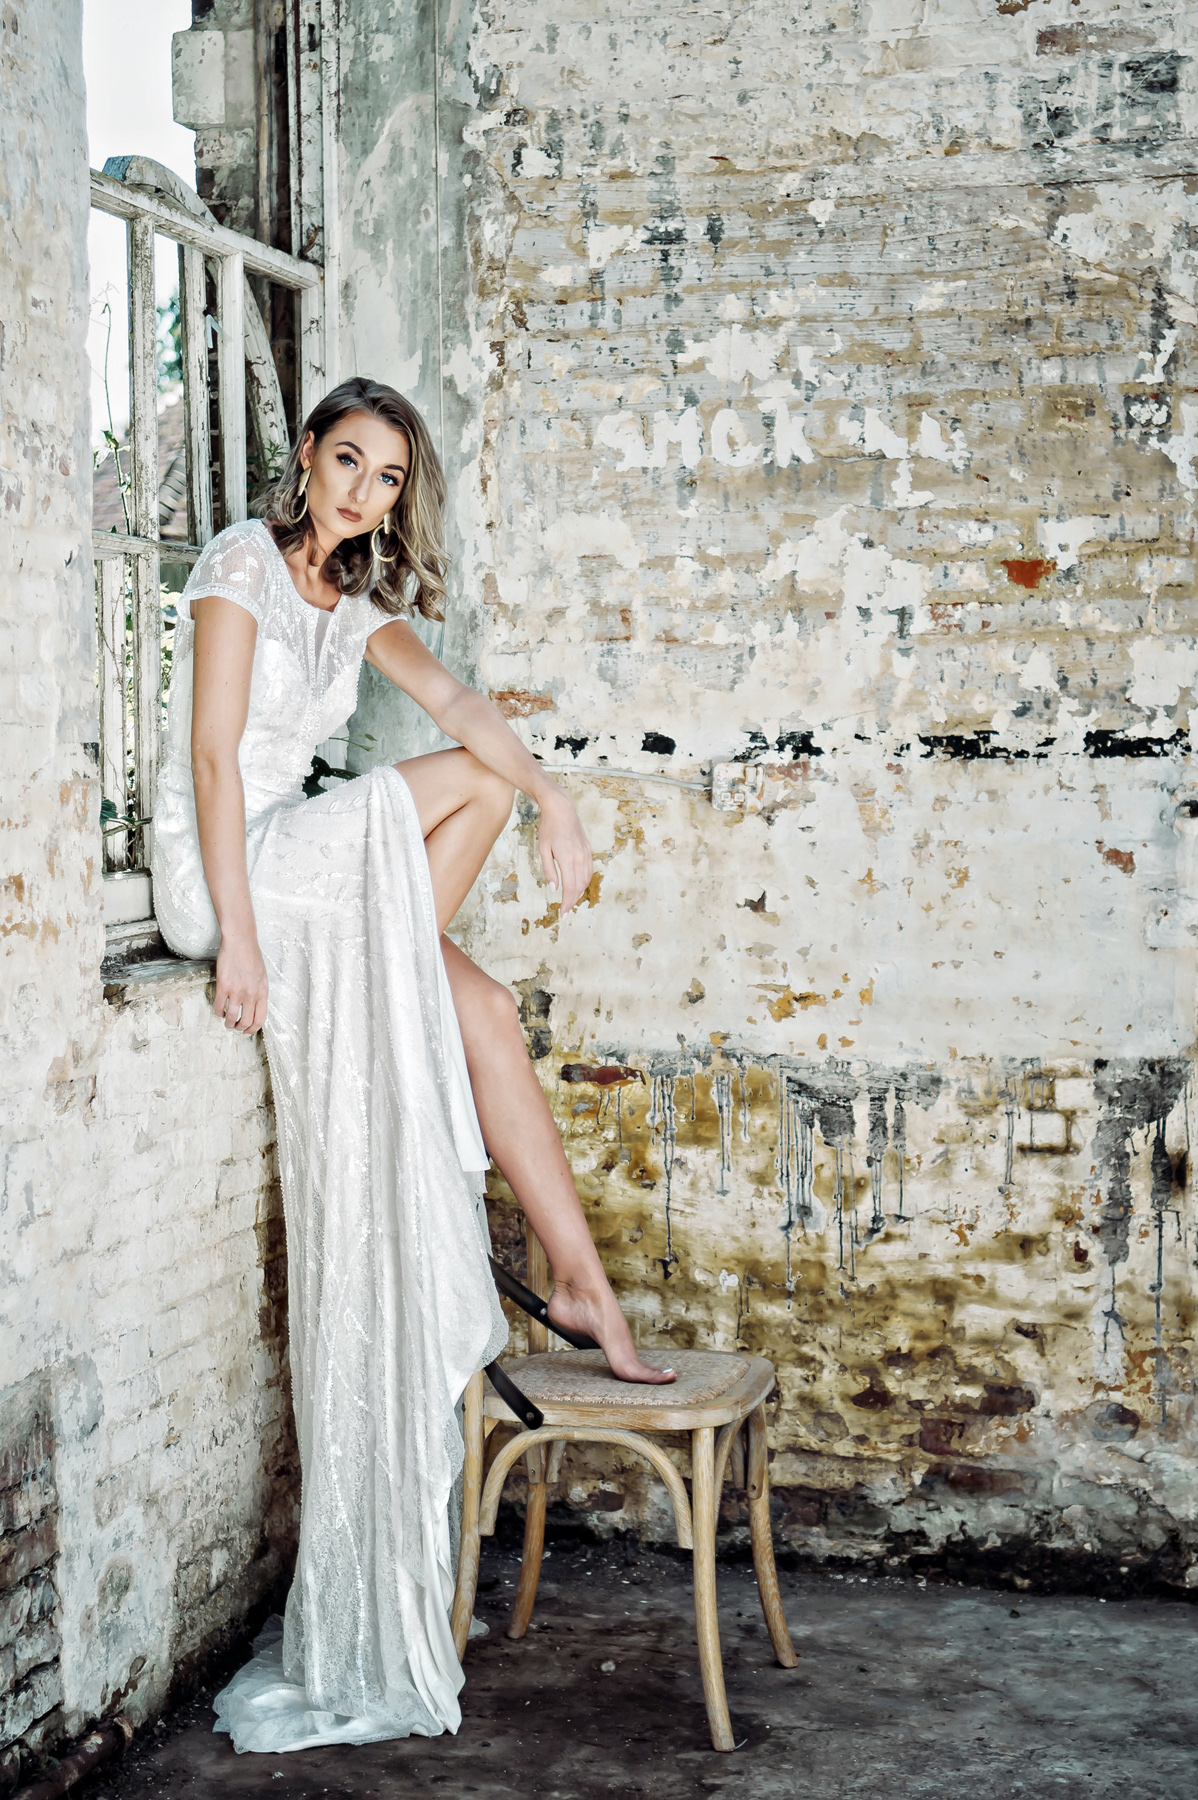 Aire Barcelona Fross Wedding Collections  - Fross Wedding Collections Bridal Boutique, Uckfield, Sussex: Modern, Glamorous, Statement Wedding Dresses